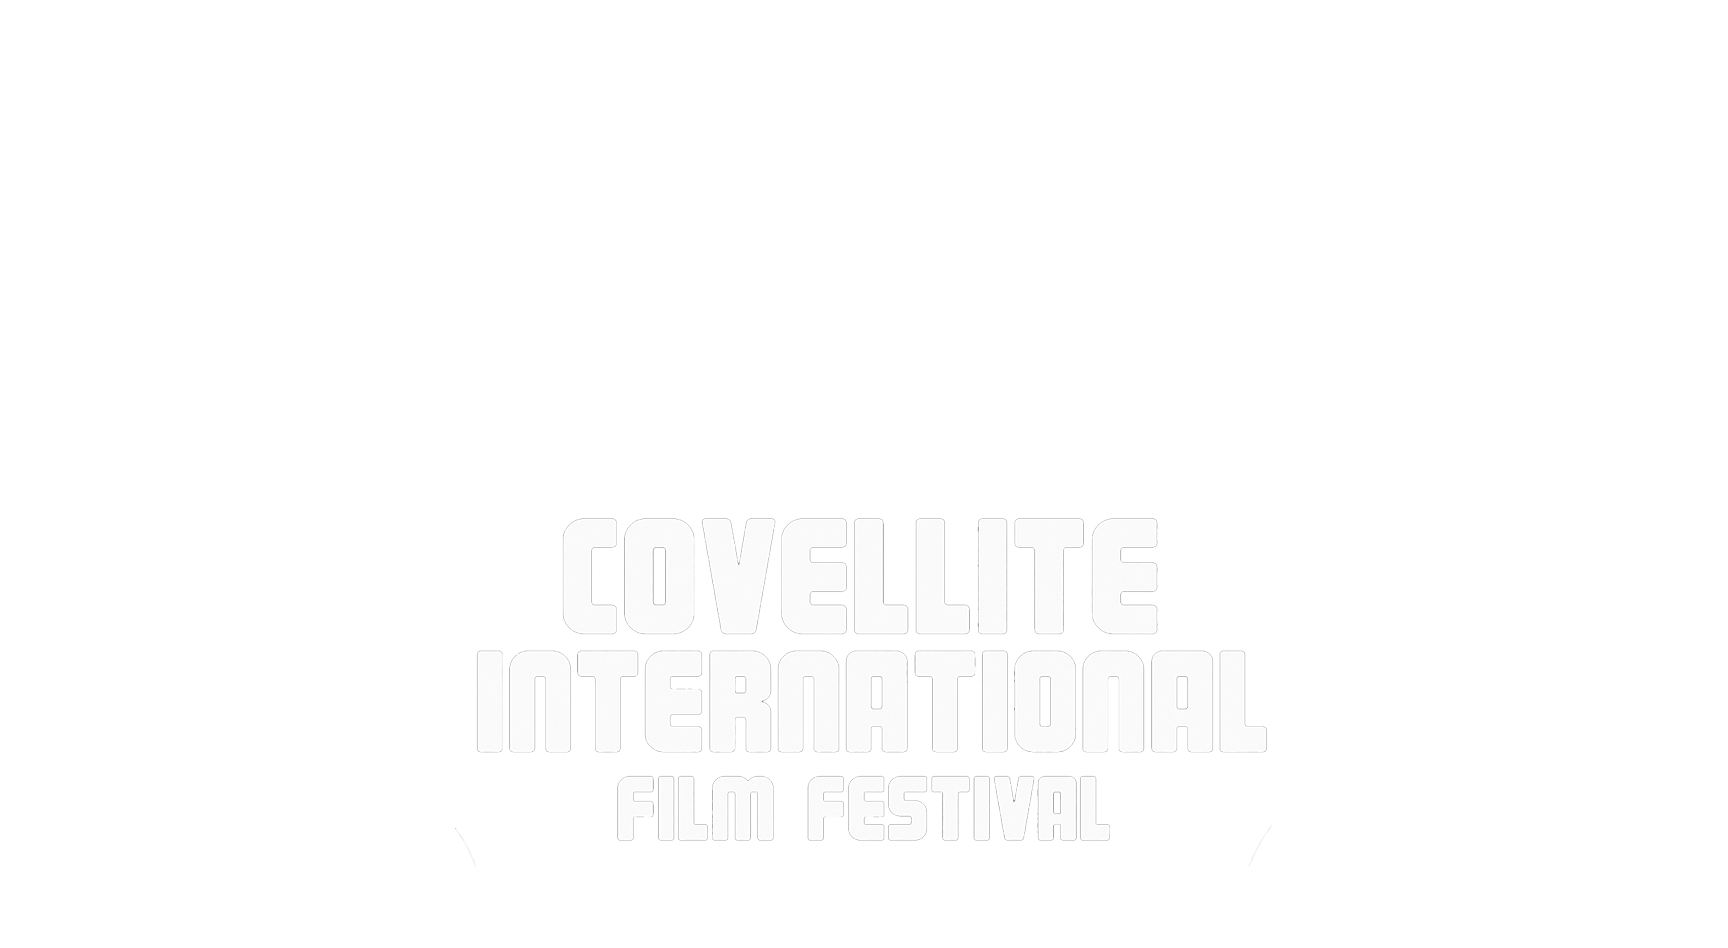 Covellite_Award.png